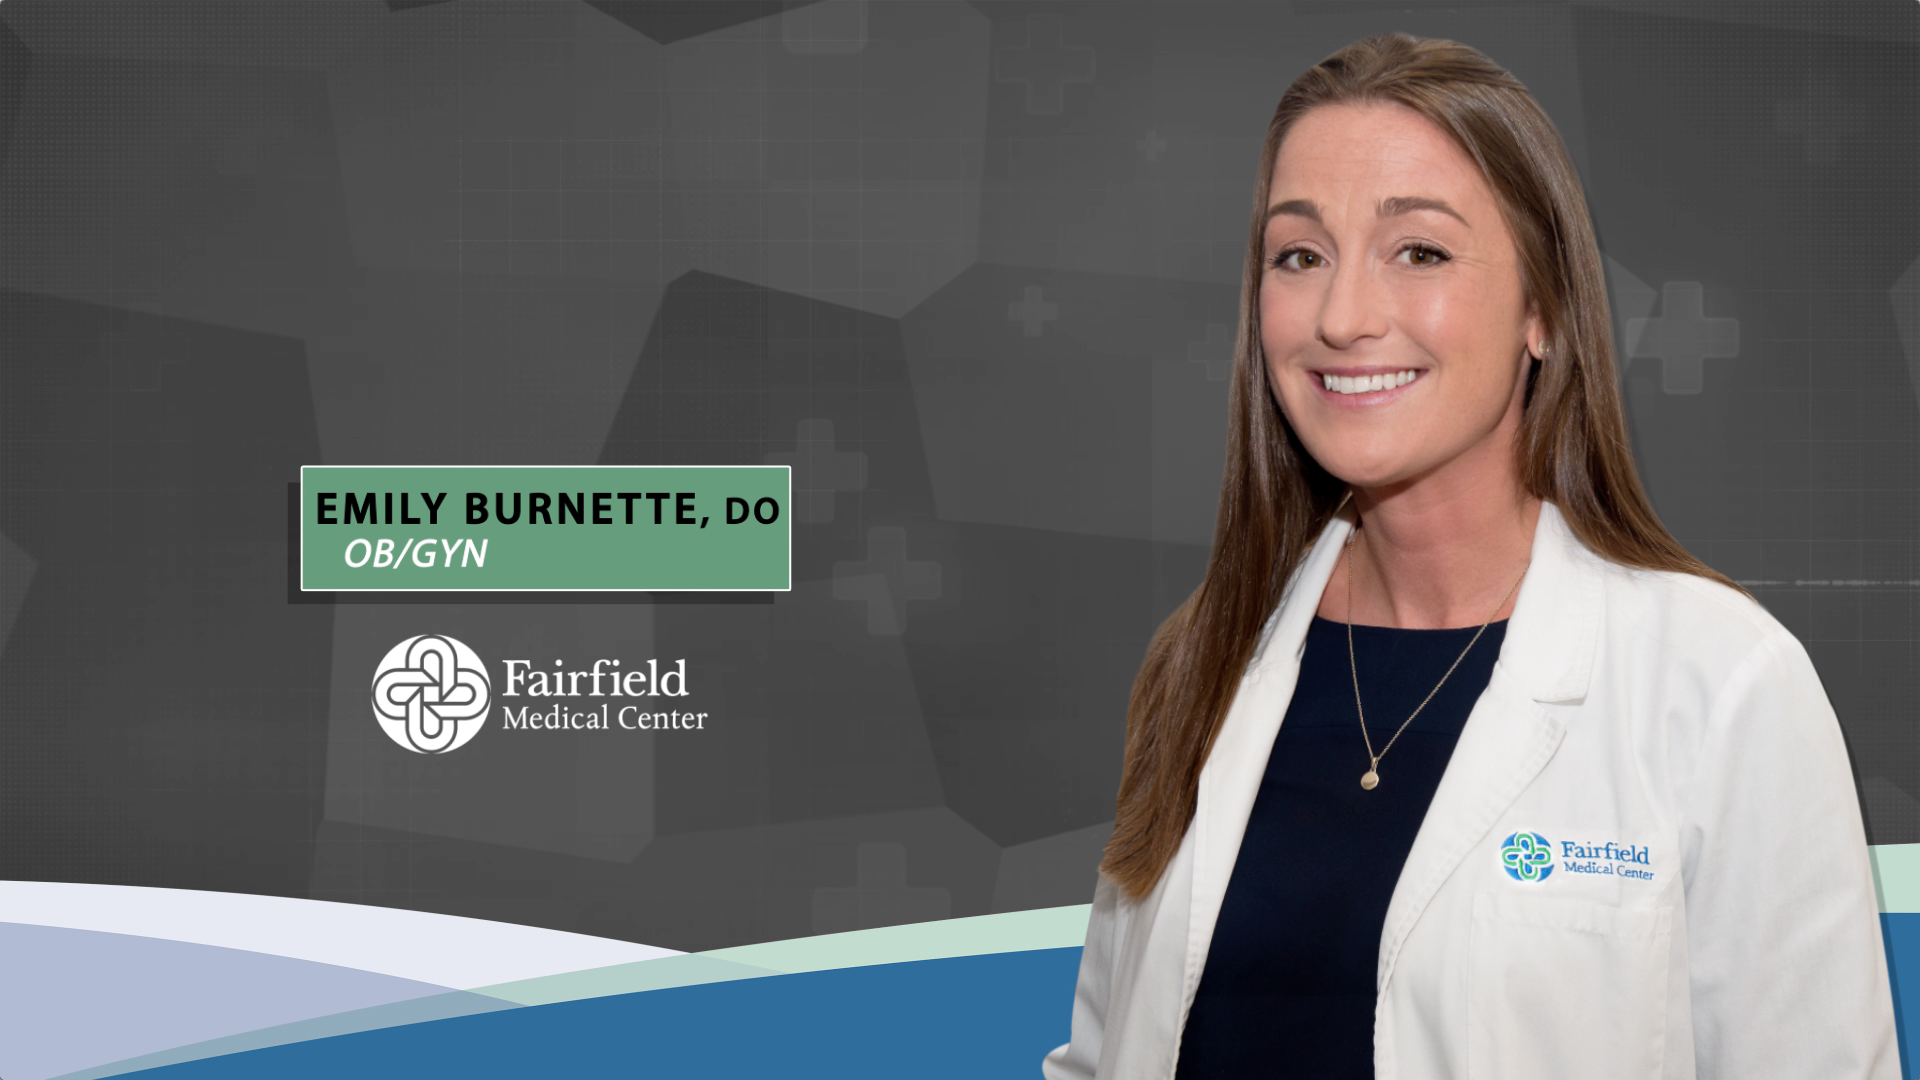 Experience the Expertise with Emily Burnette, DO Thumbnail